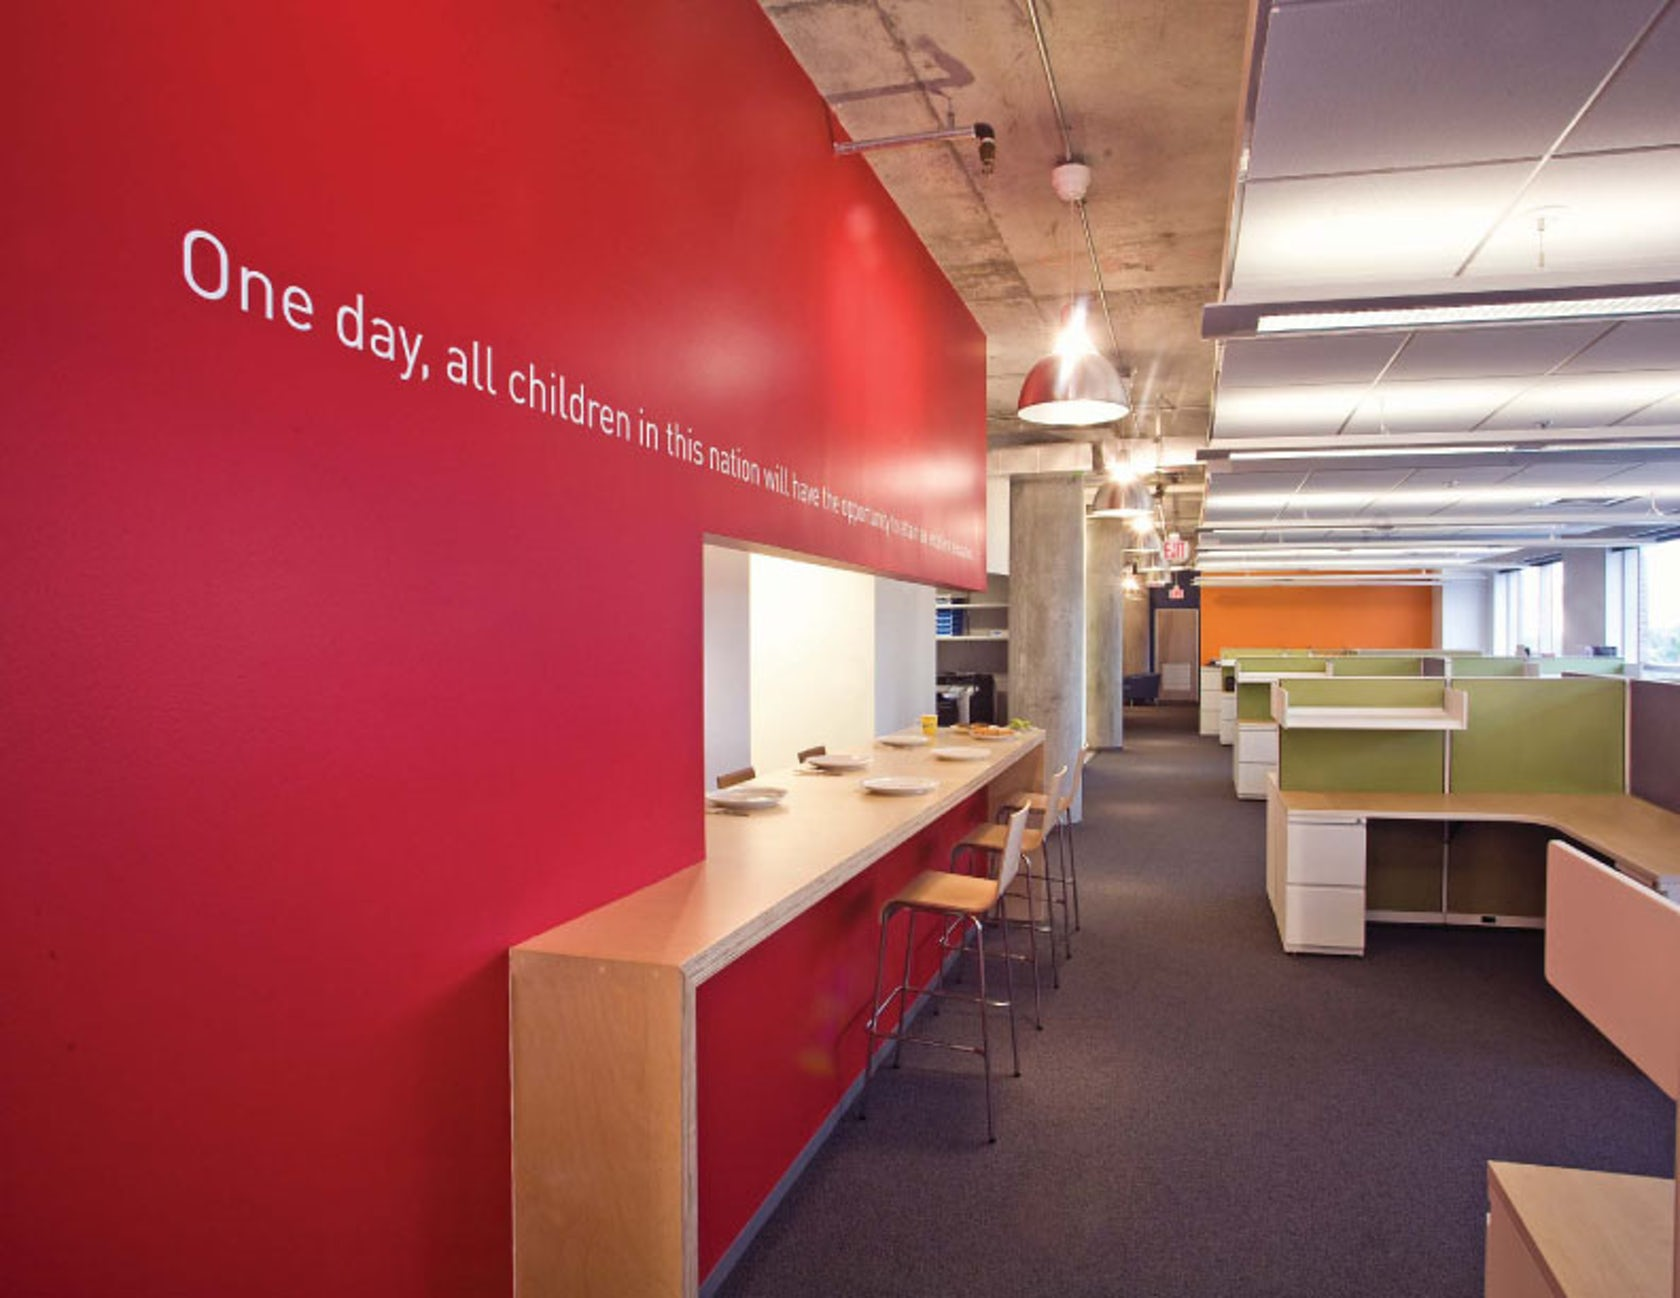 Plan architecture design strategy architizer for Design strategy firms nyc